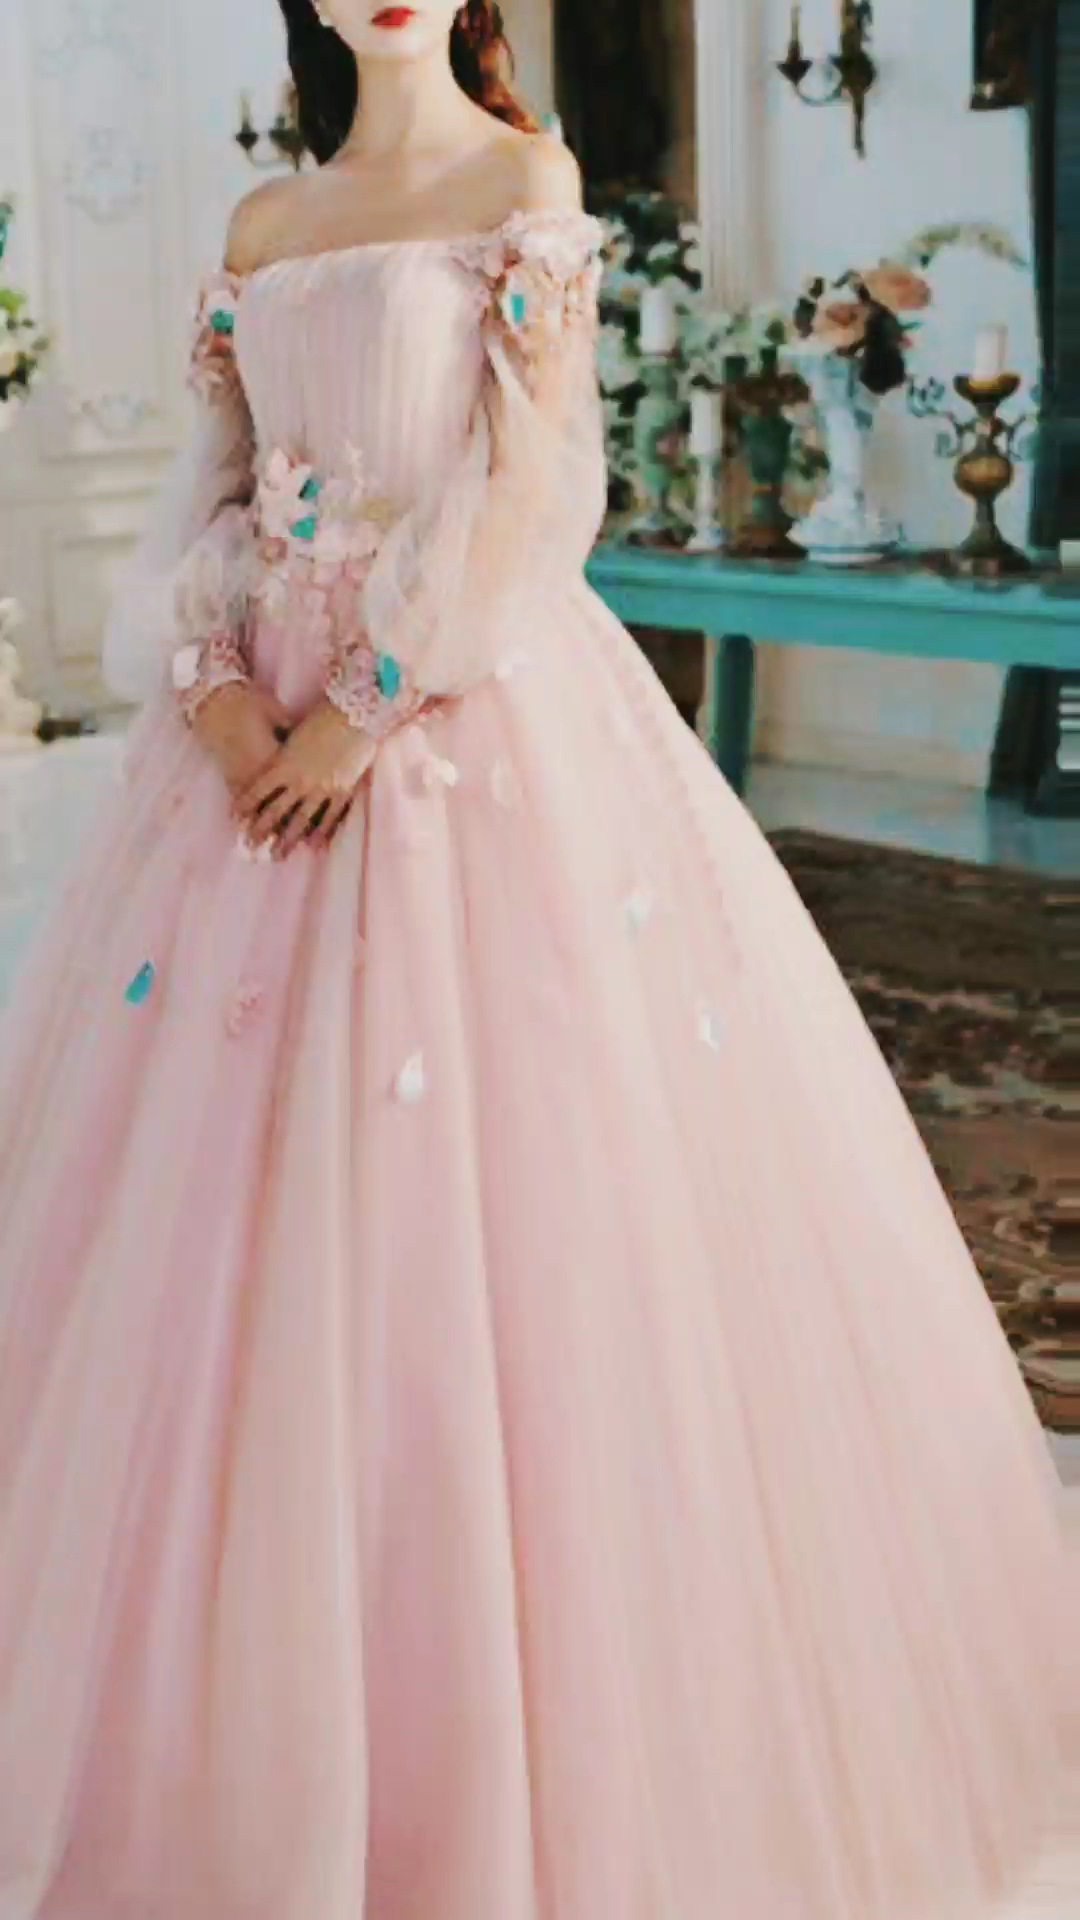 e0eb450fd695 A Line Long Sleeve Pearl Pink Ball Gown Off the Shoulder Long Floral Fairy Prom  Dresses uk PW261 #longsleeve #pearlpink #ballgown #offshoulder #floral ...